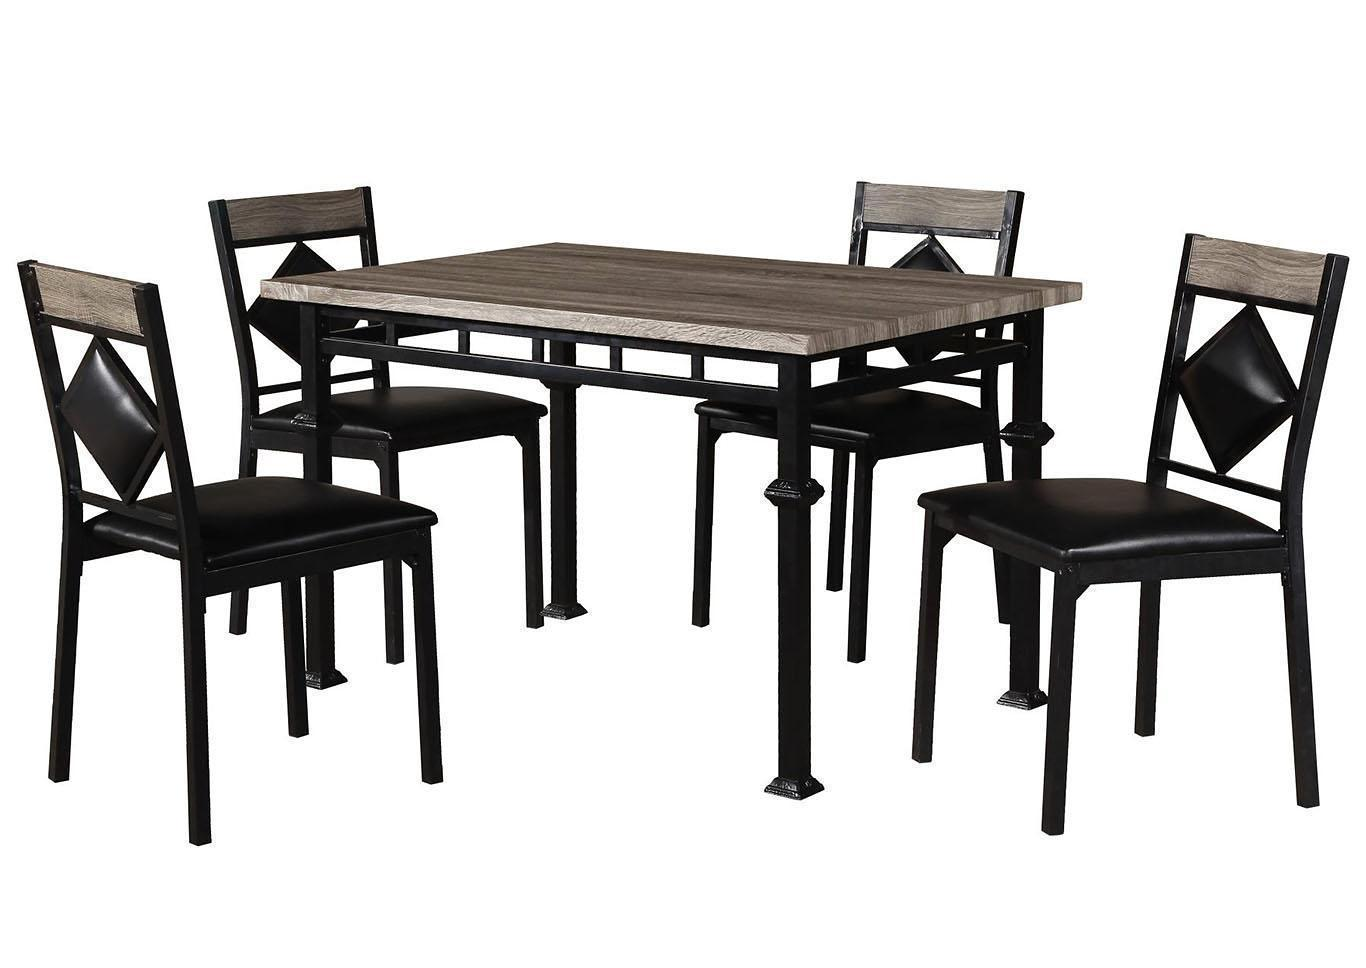 Home Source 5 PC Dining Set,In Store Products